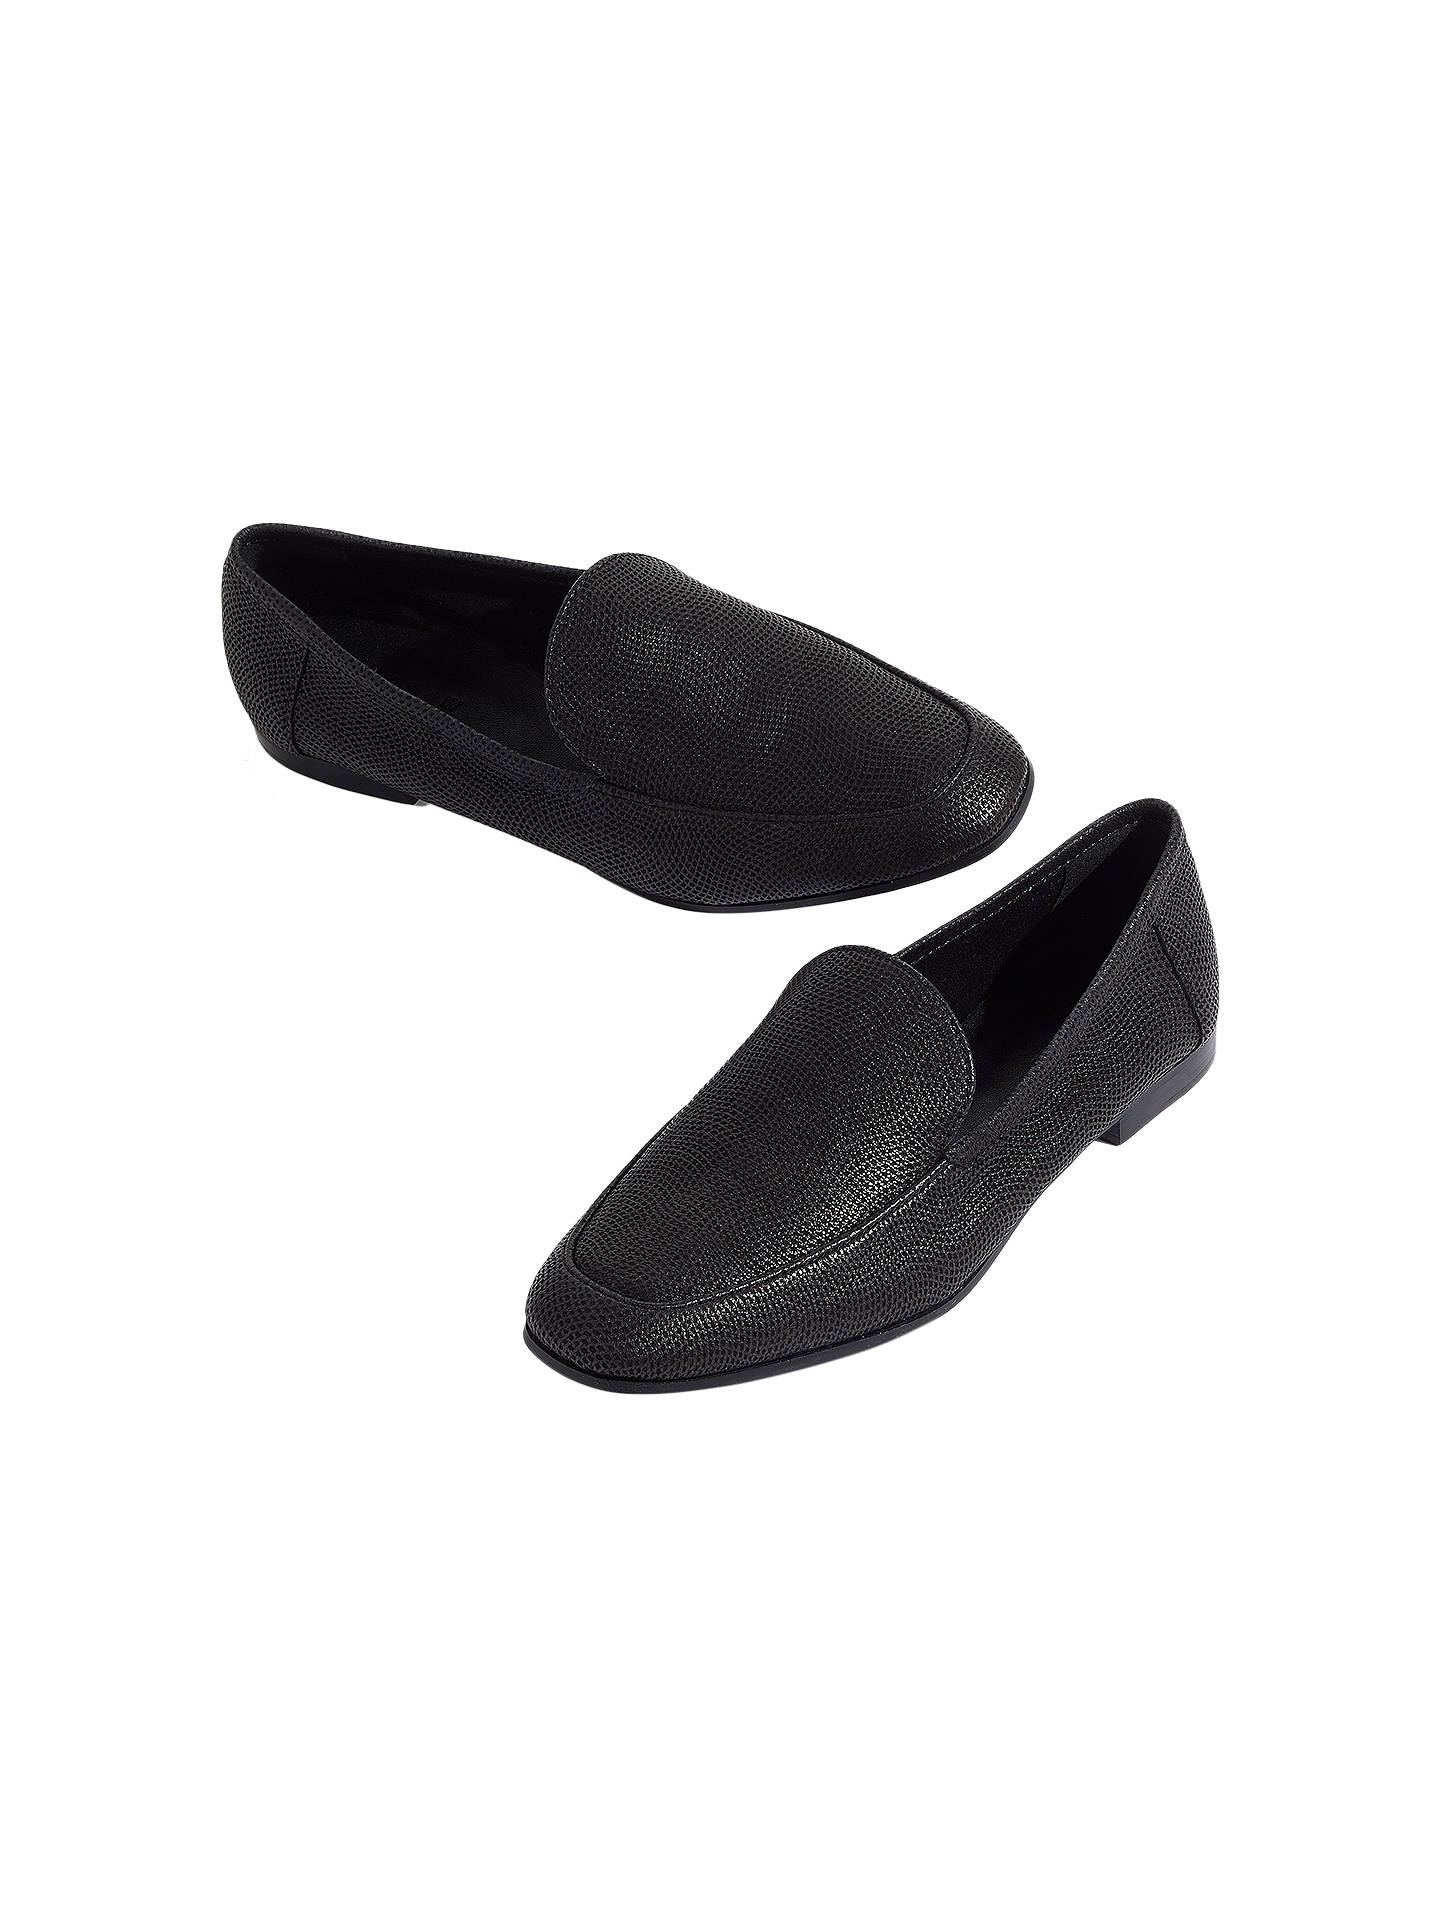 Jigsaw Keller Slip On Loafers at John Lewis Lewis John & Partners 74f176